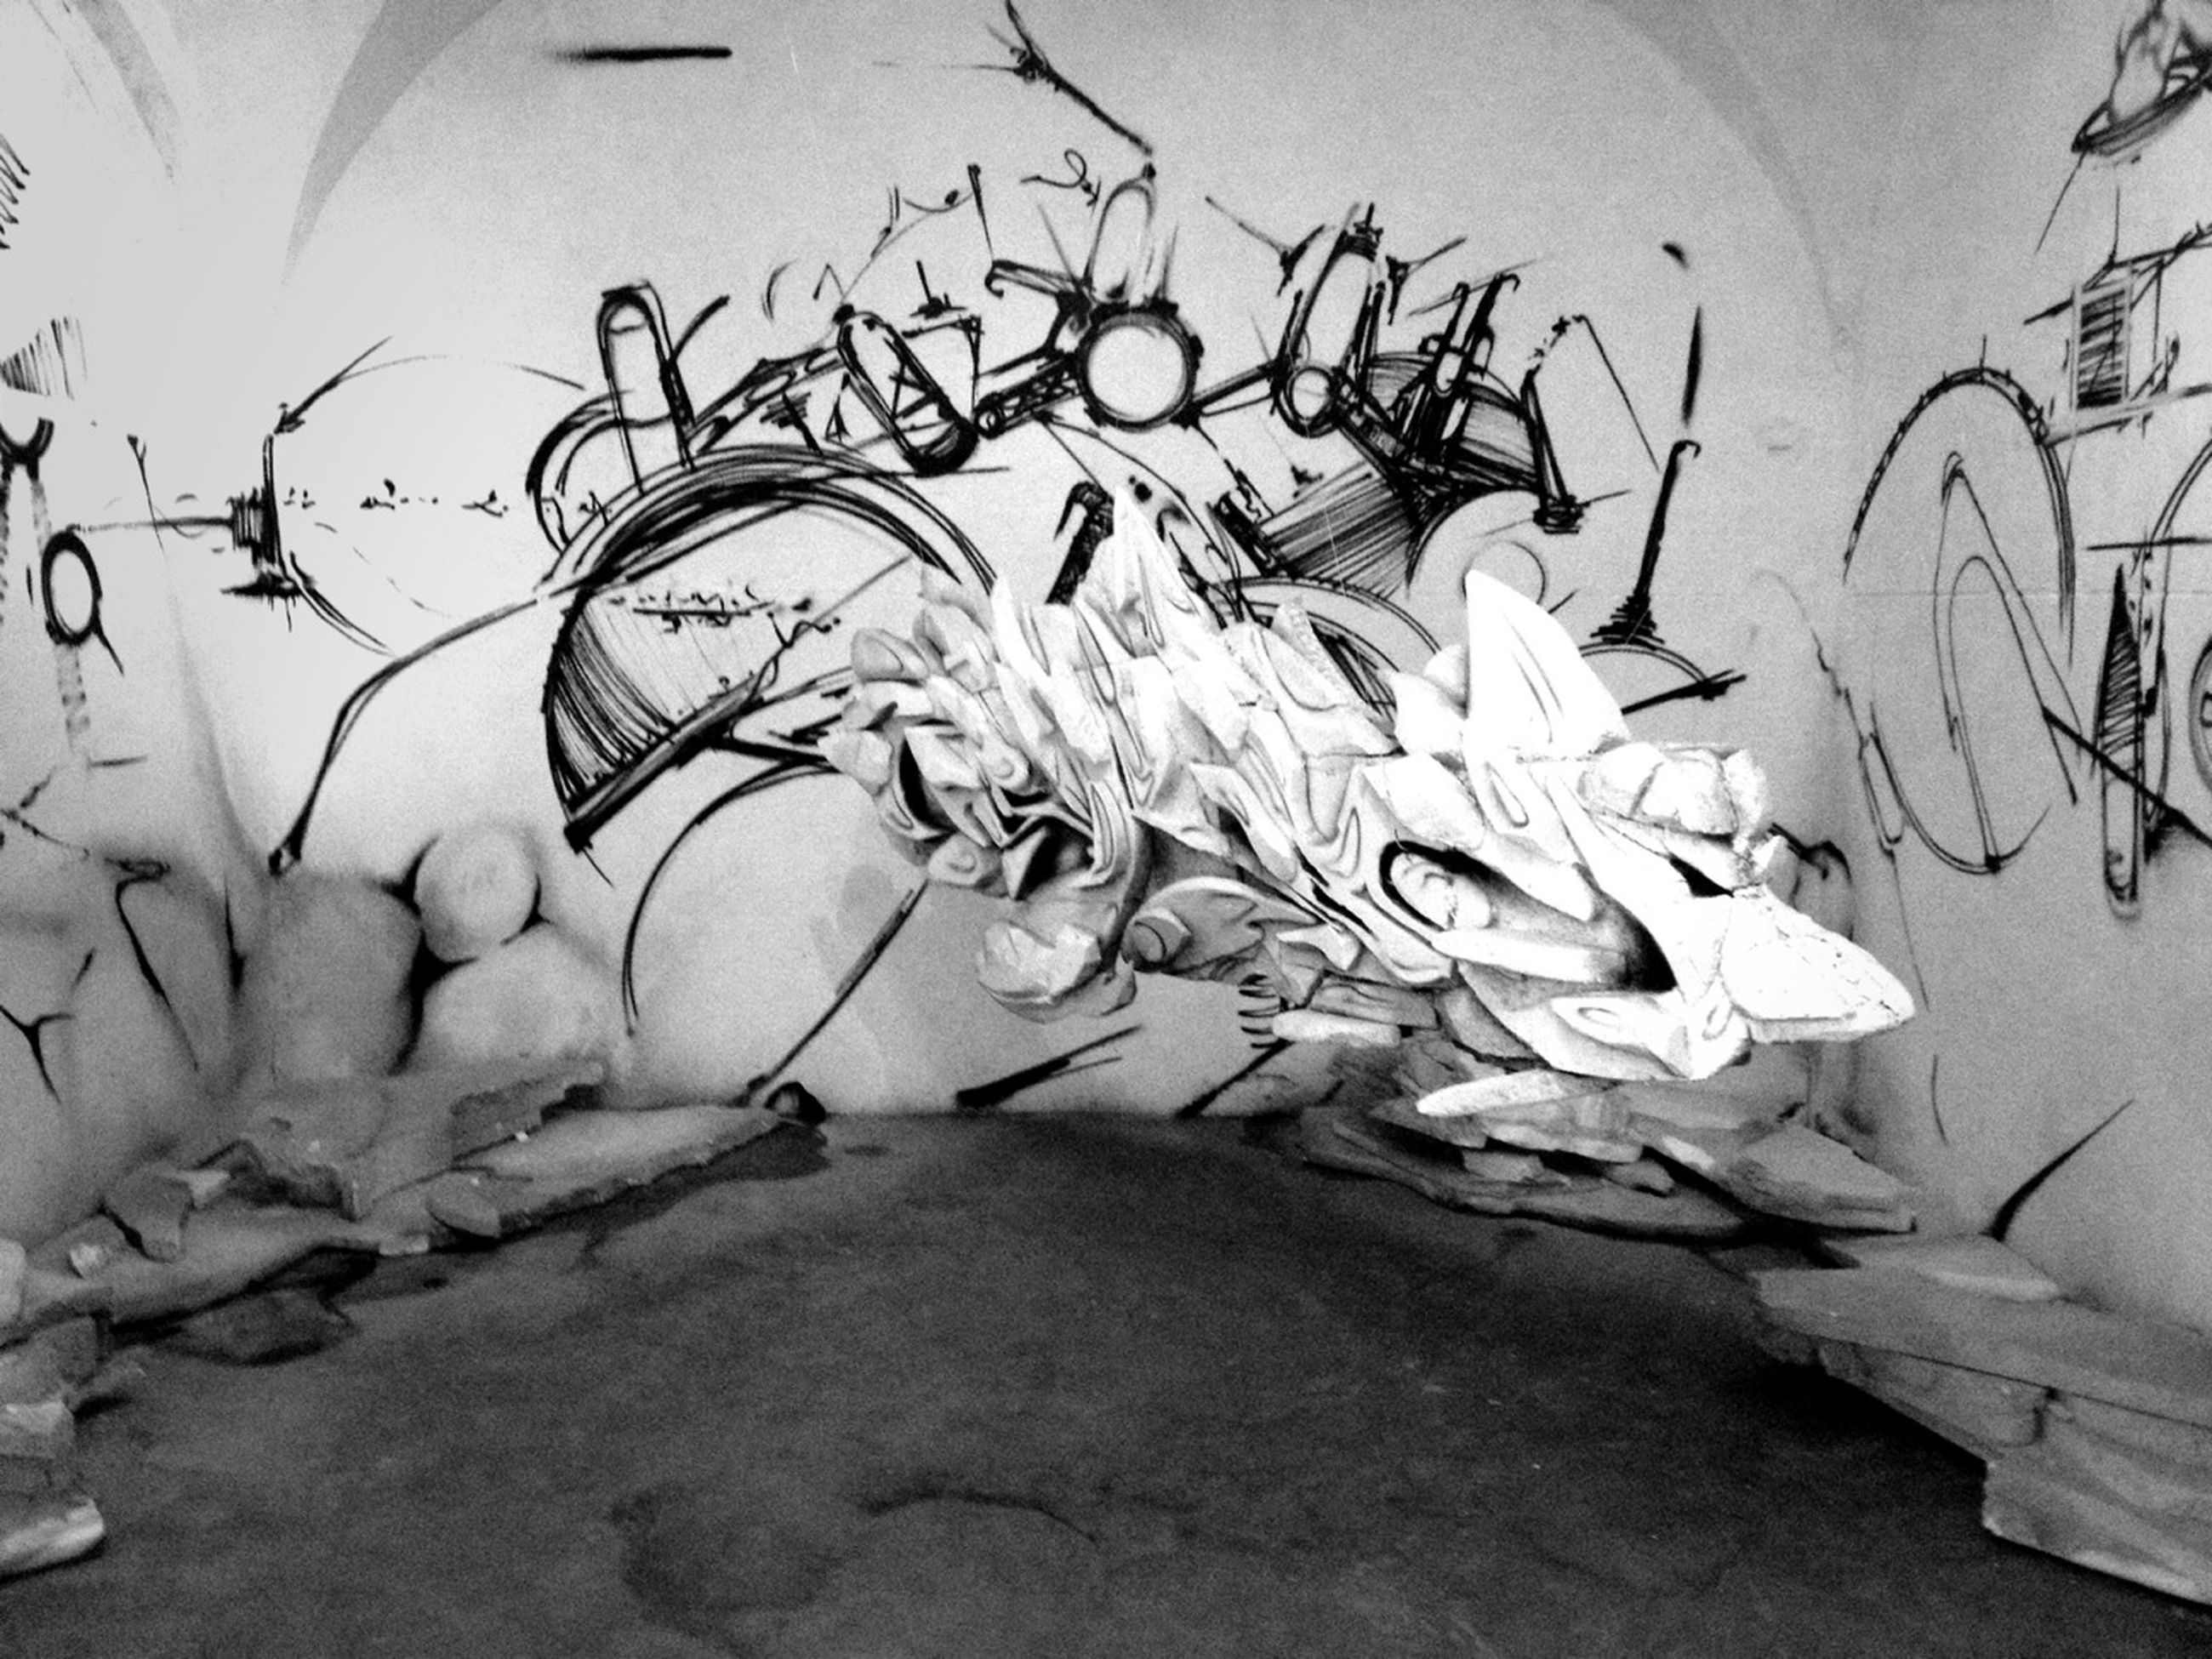 indoors, text, art and craft, art, creativity, wall - building feature, western script, communication, built structure, graffiti, architecture, human representation, no people, close-up, day, high angle view, wall, old, non-western script